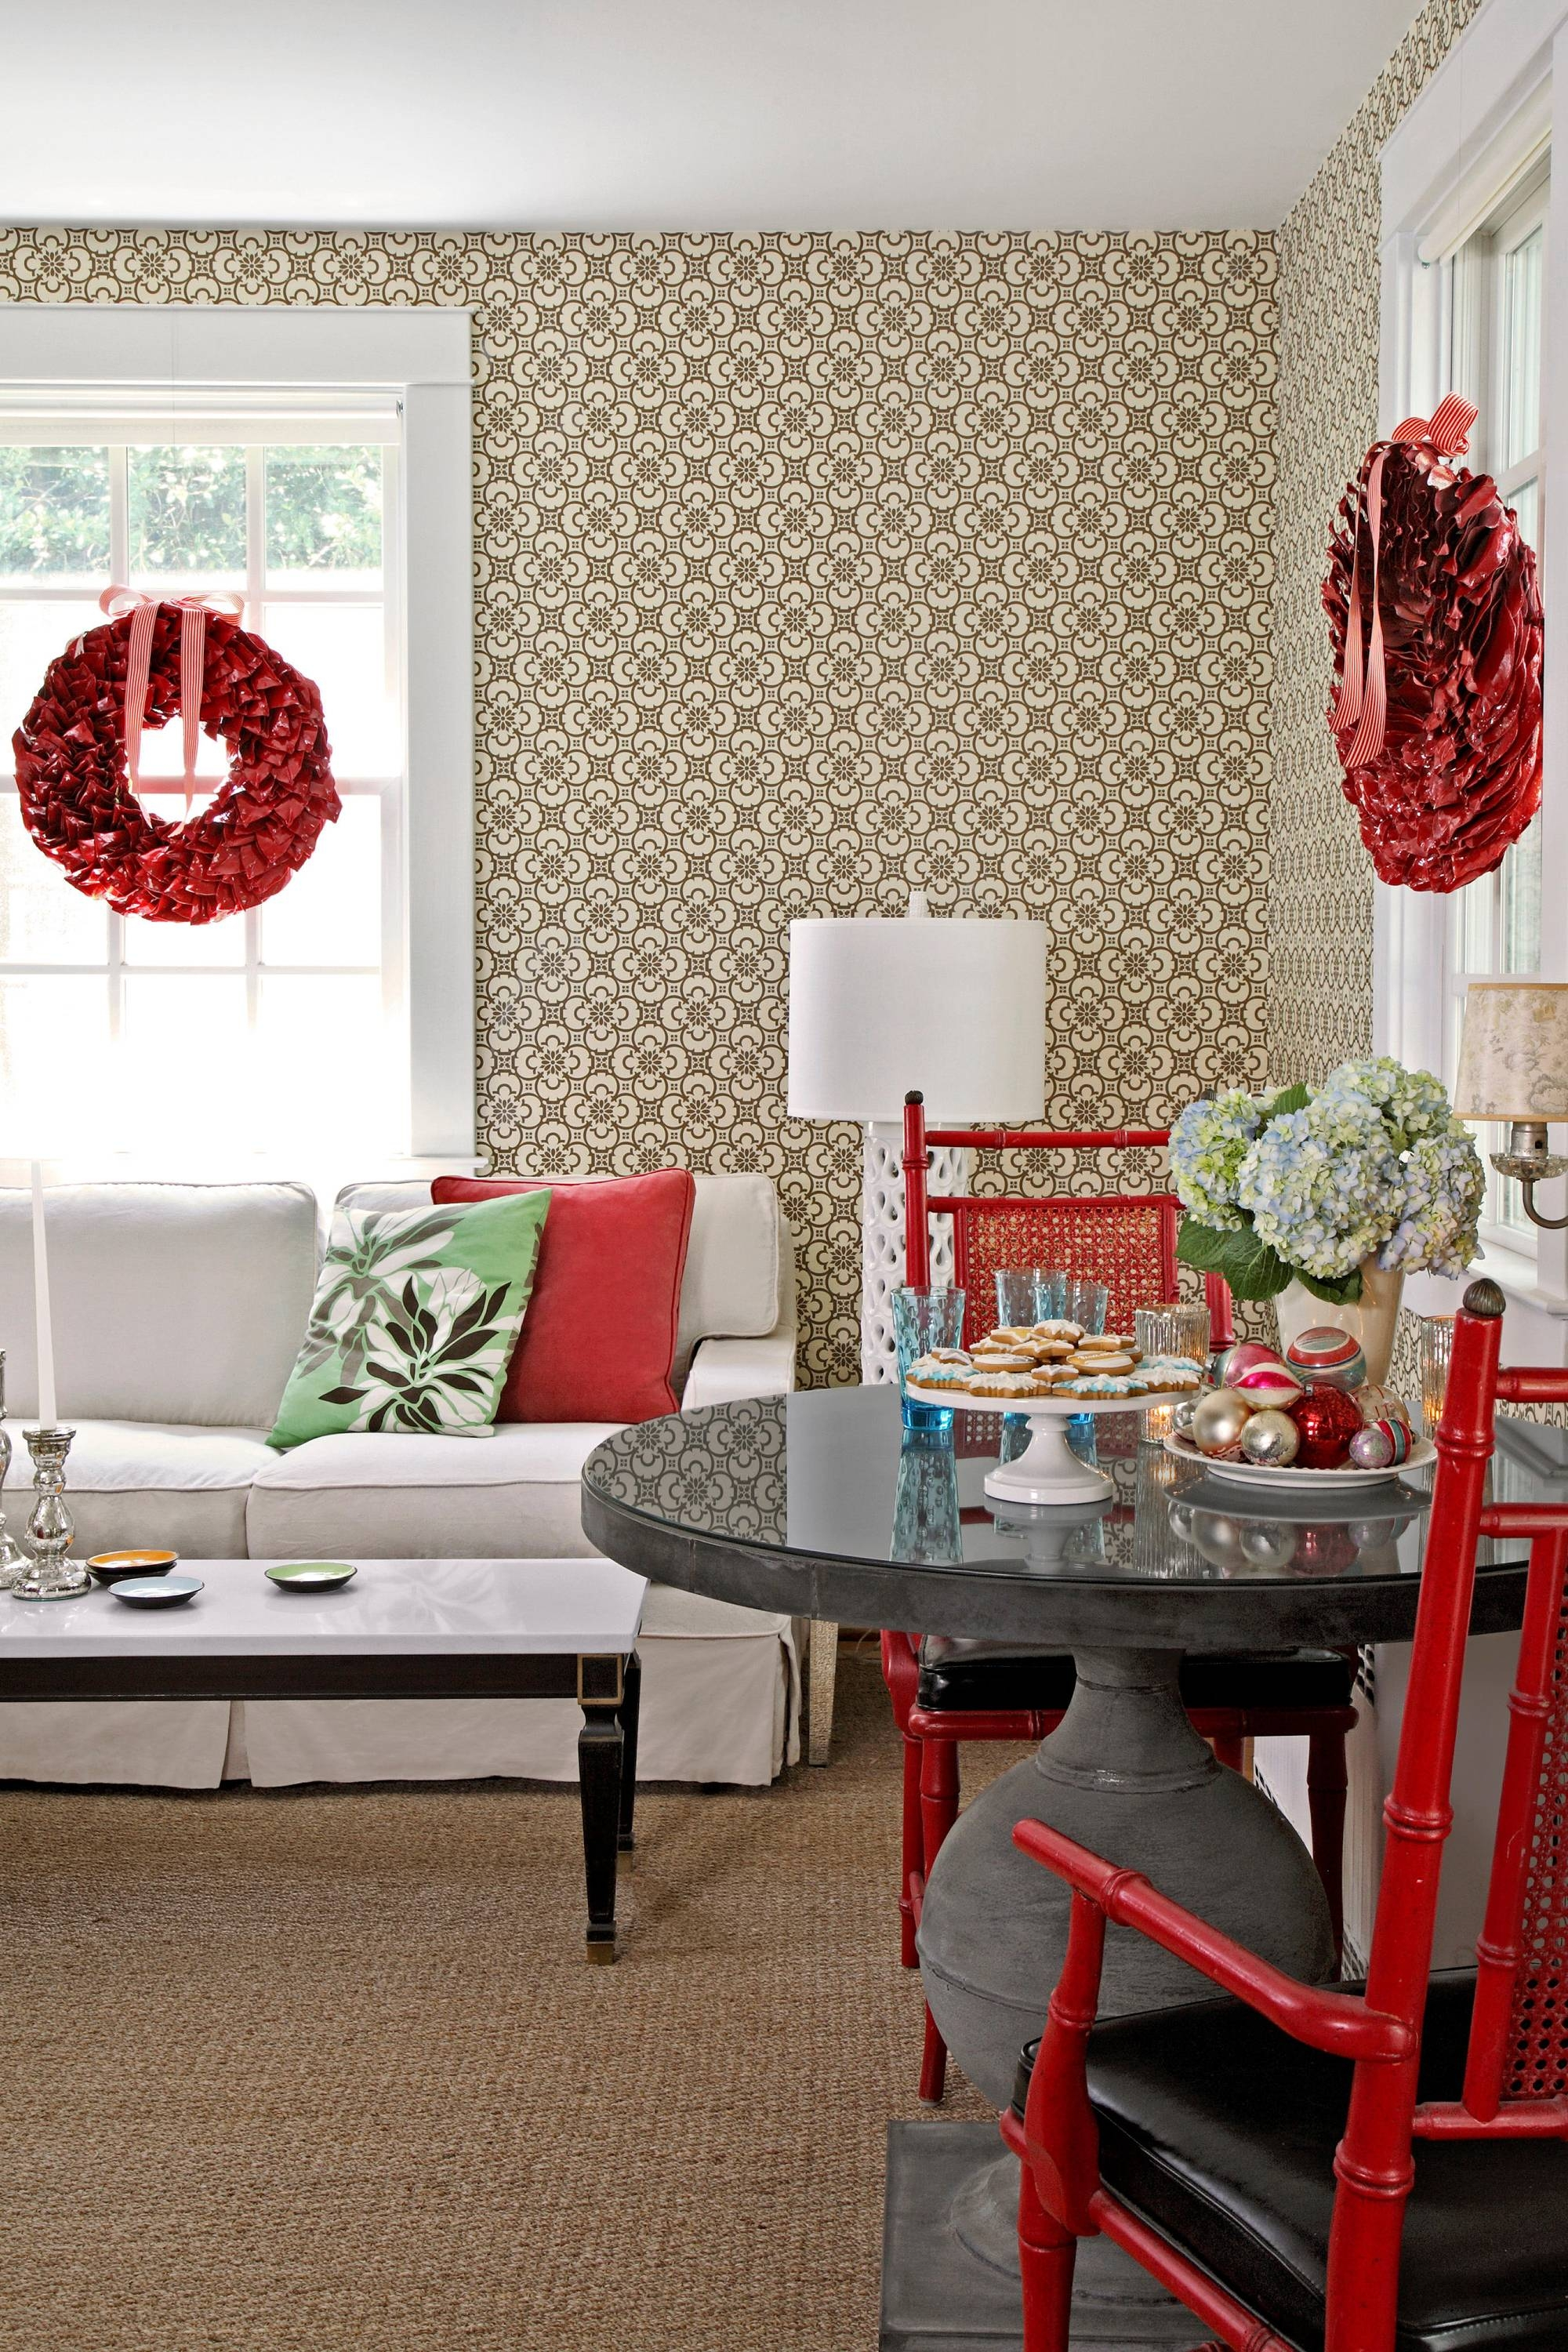 45 Best Christmas Table Settings – Decorations And Centerpiece For Rustic Christmas Coffee Table Decors (View 15 of 30)